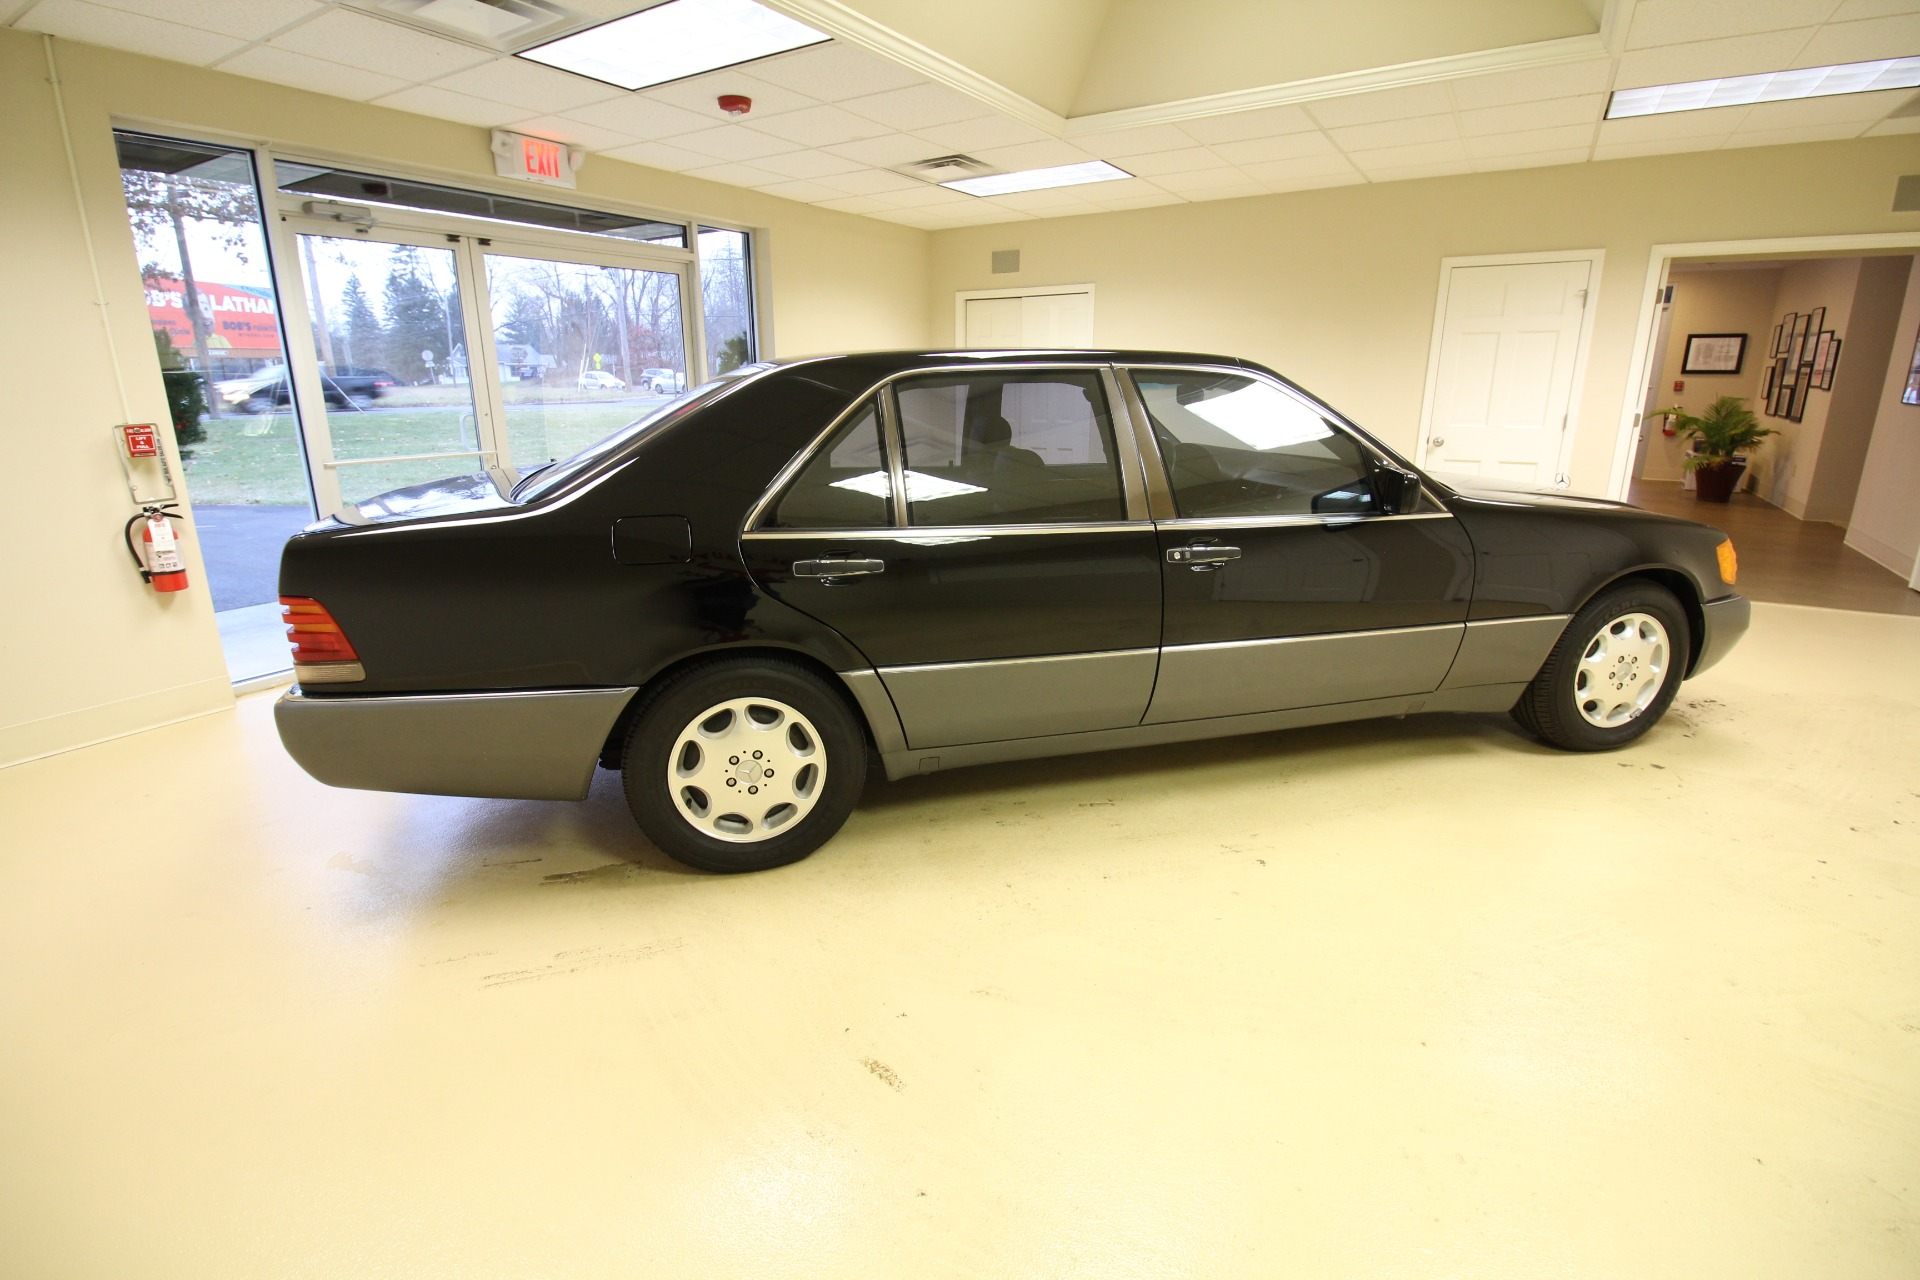 Used 1993 Mercedes-Benz S-Class 400SEL SEDAN SUPERB INSIDE AND OUT SPECTACULAR W/ LOW MILES | Albany, NY